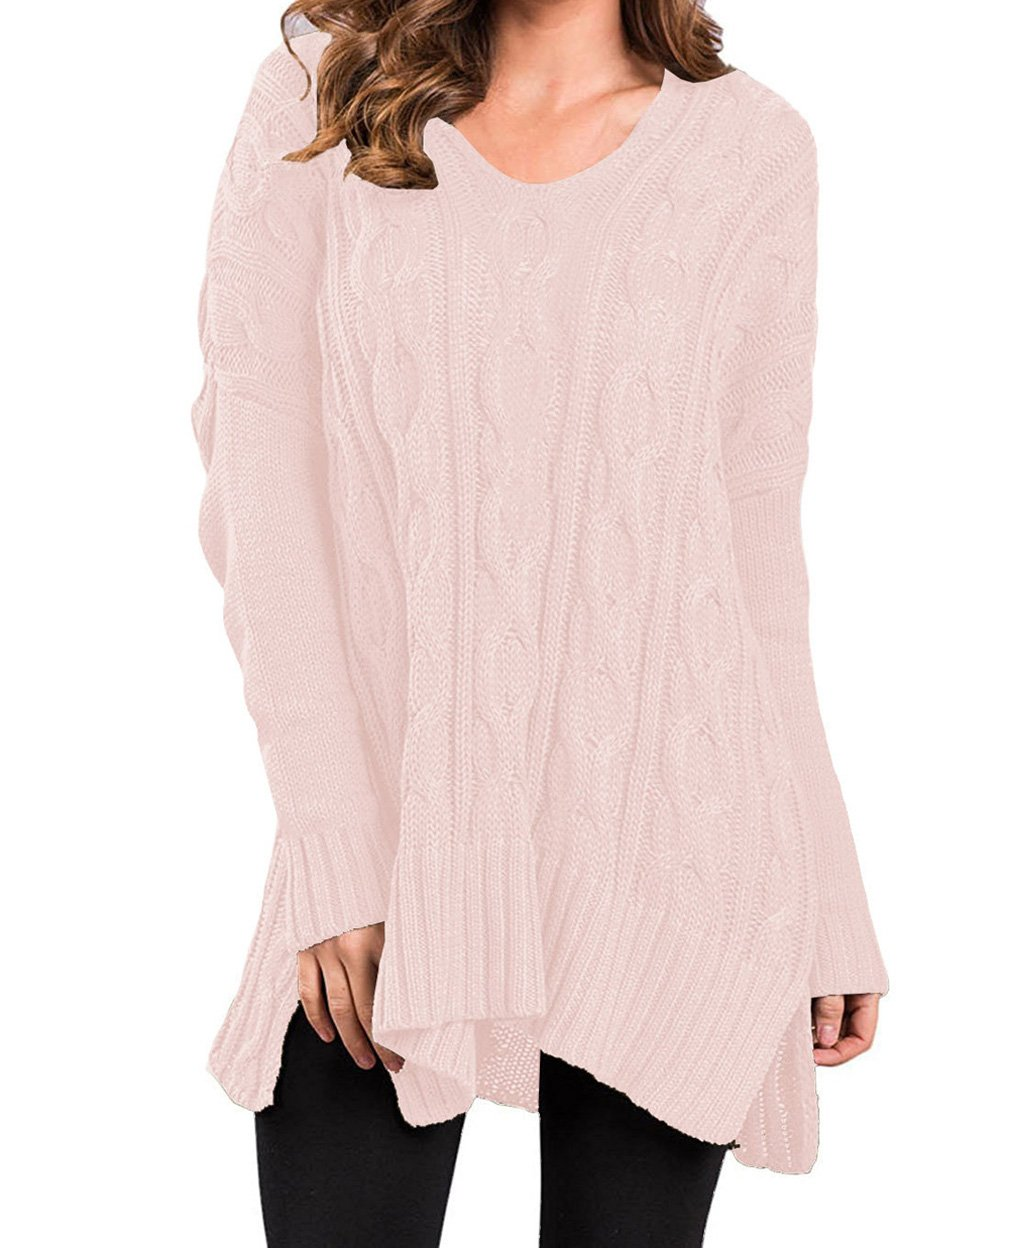 Tomlyws Women Casual V Neck Long Sleeve Loose Fit Knit Sweater Pullover Top Pink S